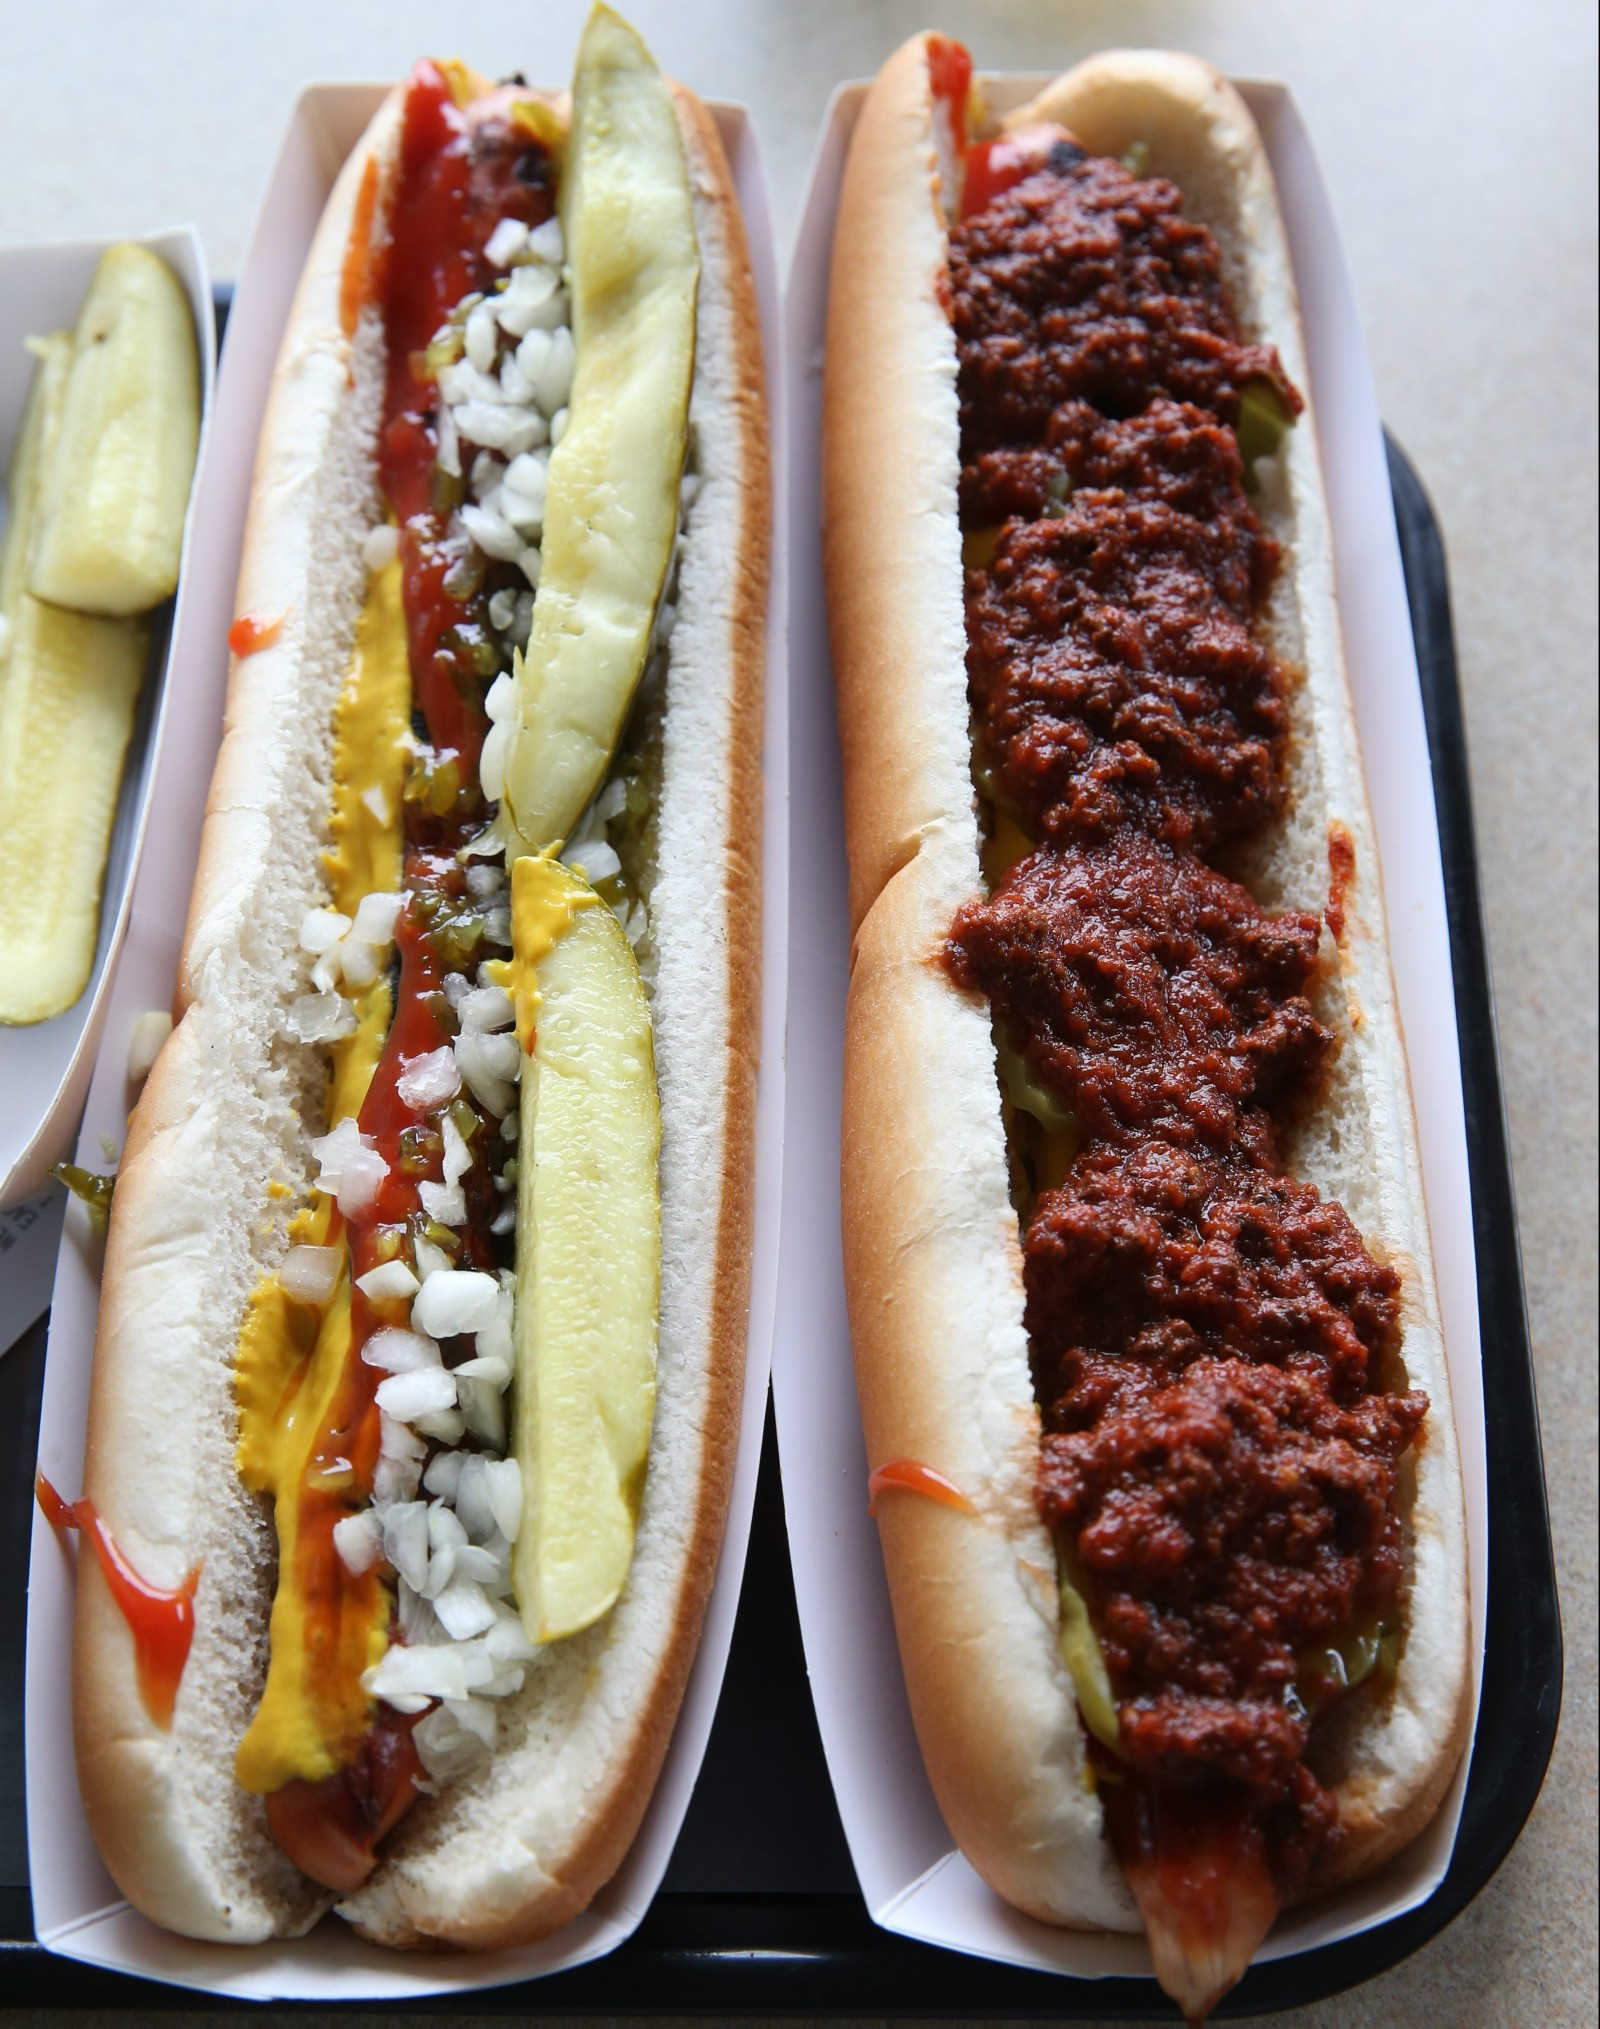 Two of the foot-long hot dog offerings from Ted's Hot Dogs on Sheridan Drive. (Sharon Cantillon/Buffalo News)